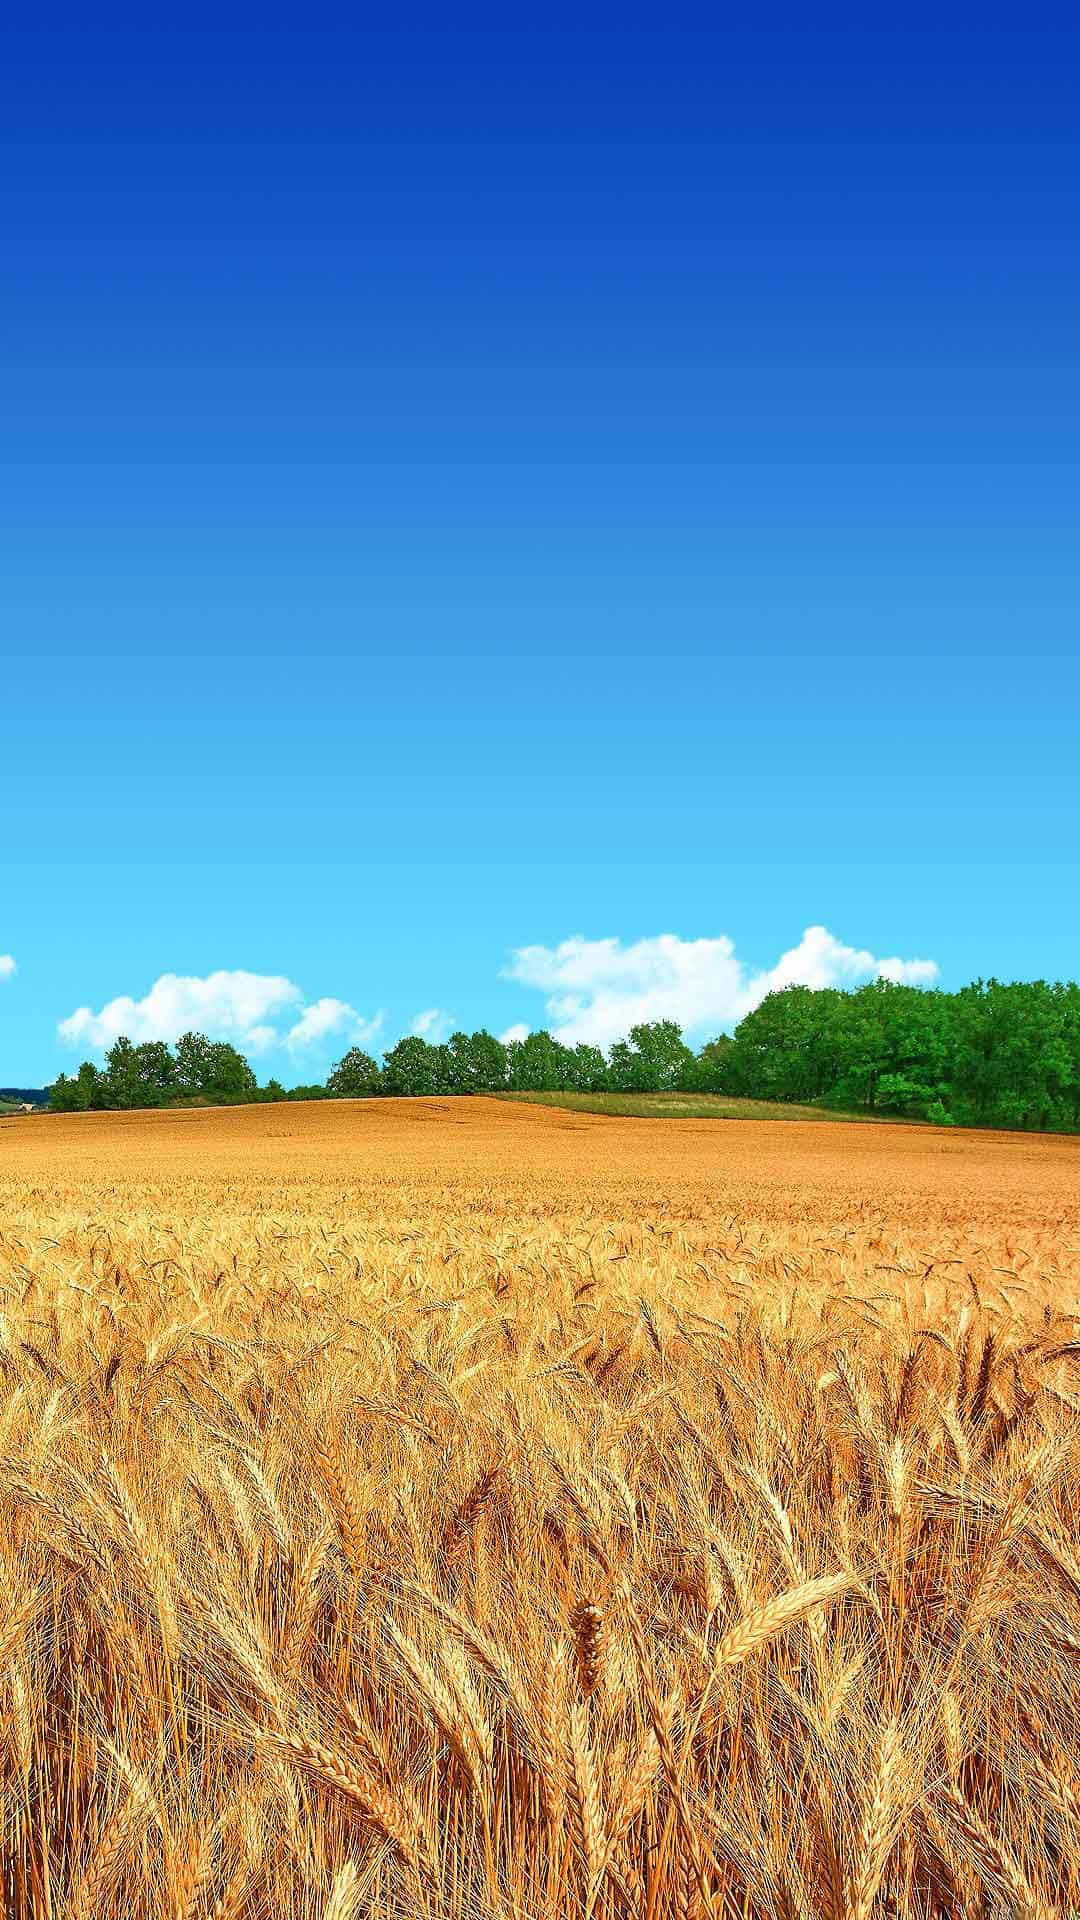 golden-wheat-field-blue-sky-forest-android-wallpaper